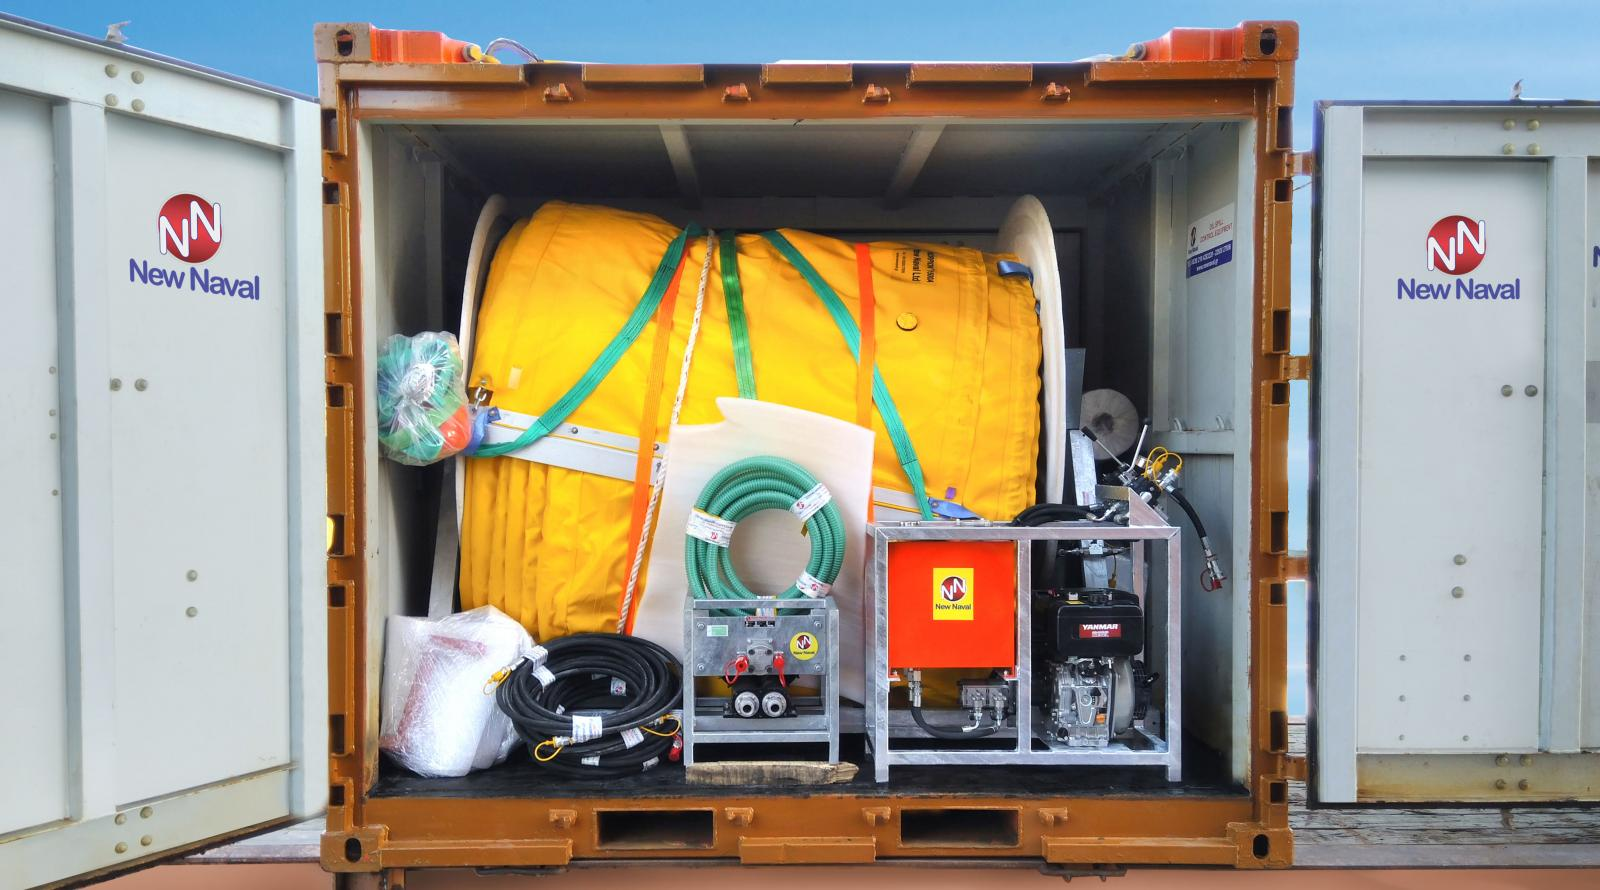 OIL SPILL RESPONSE,OIL SPILL EQUIPMENT, EQUIPMENT, RESPONSE SERVICES